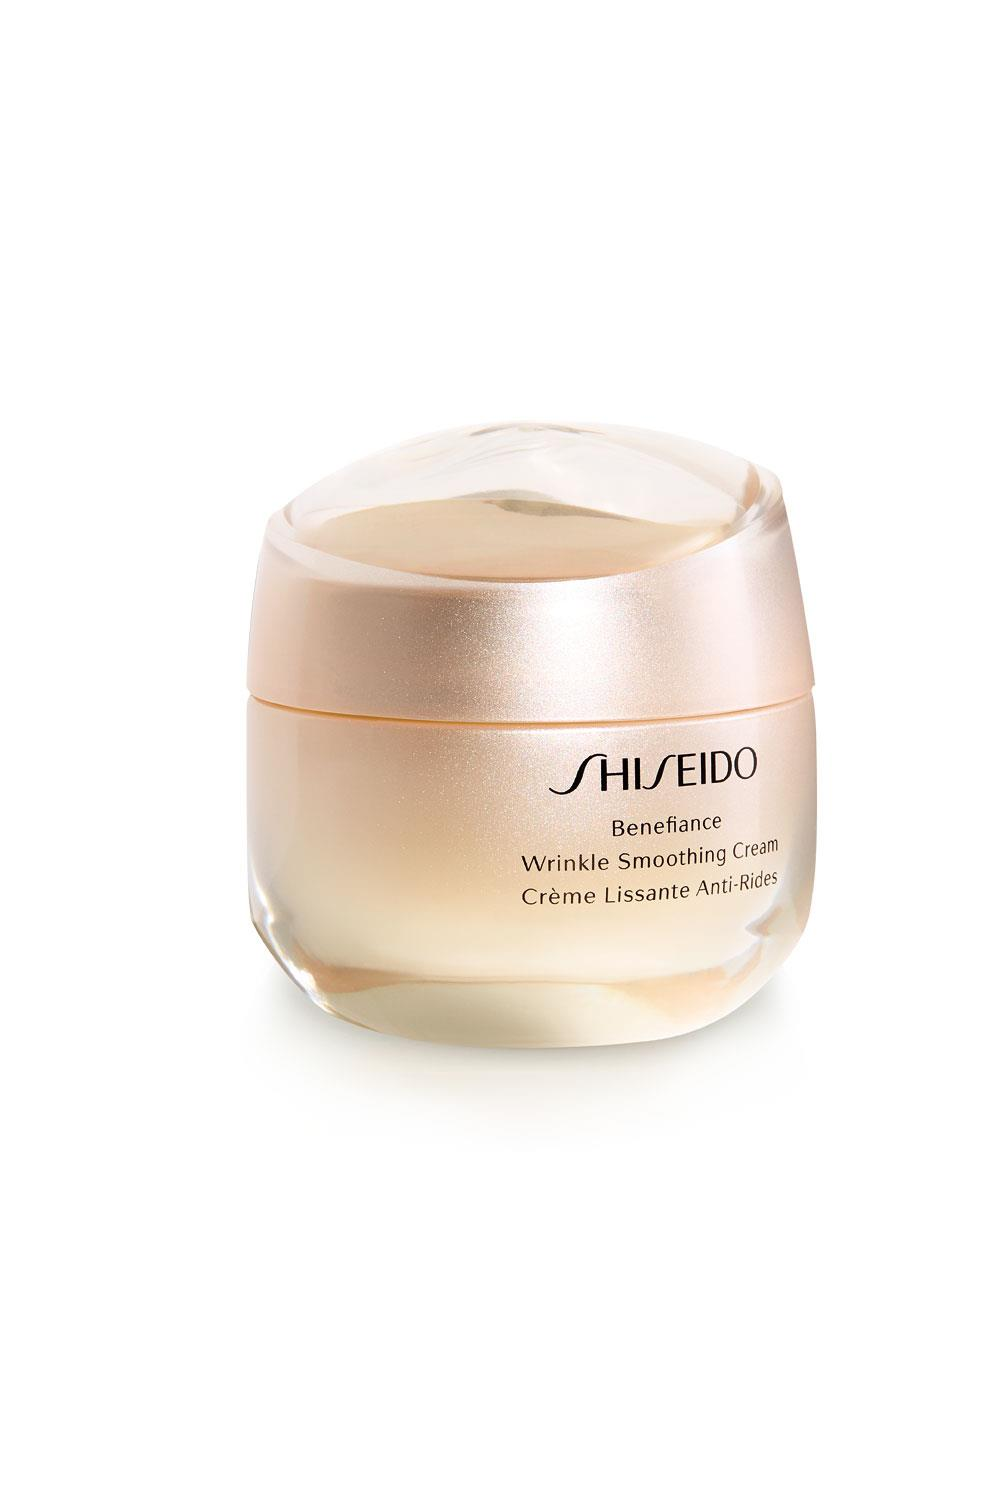 novedades antiedad Benefiance Wrinkle Smoothing Cream de Shiseido, 100€